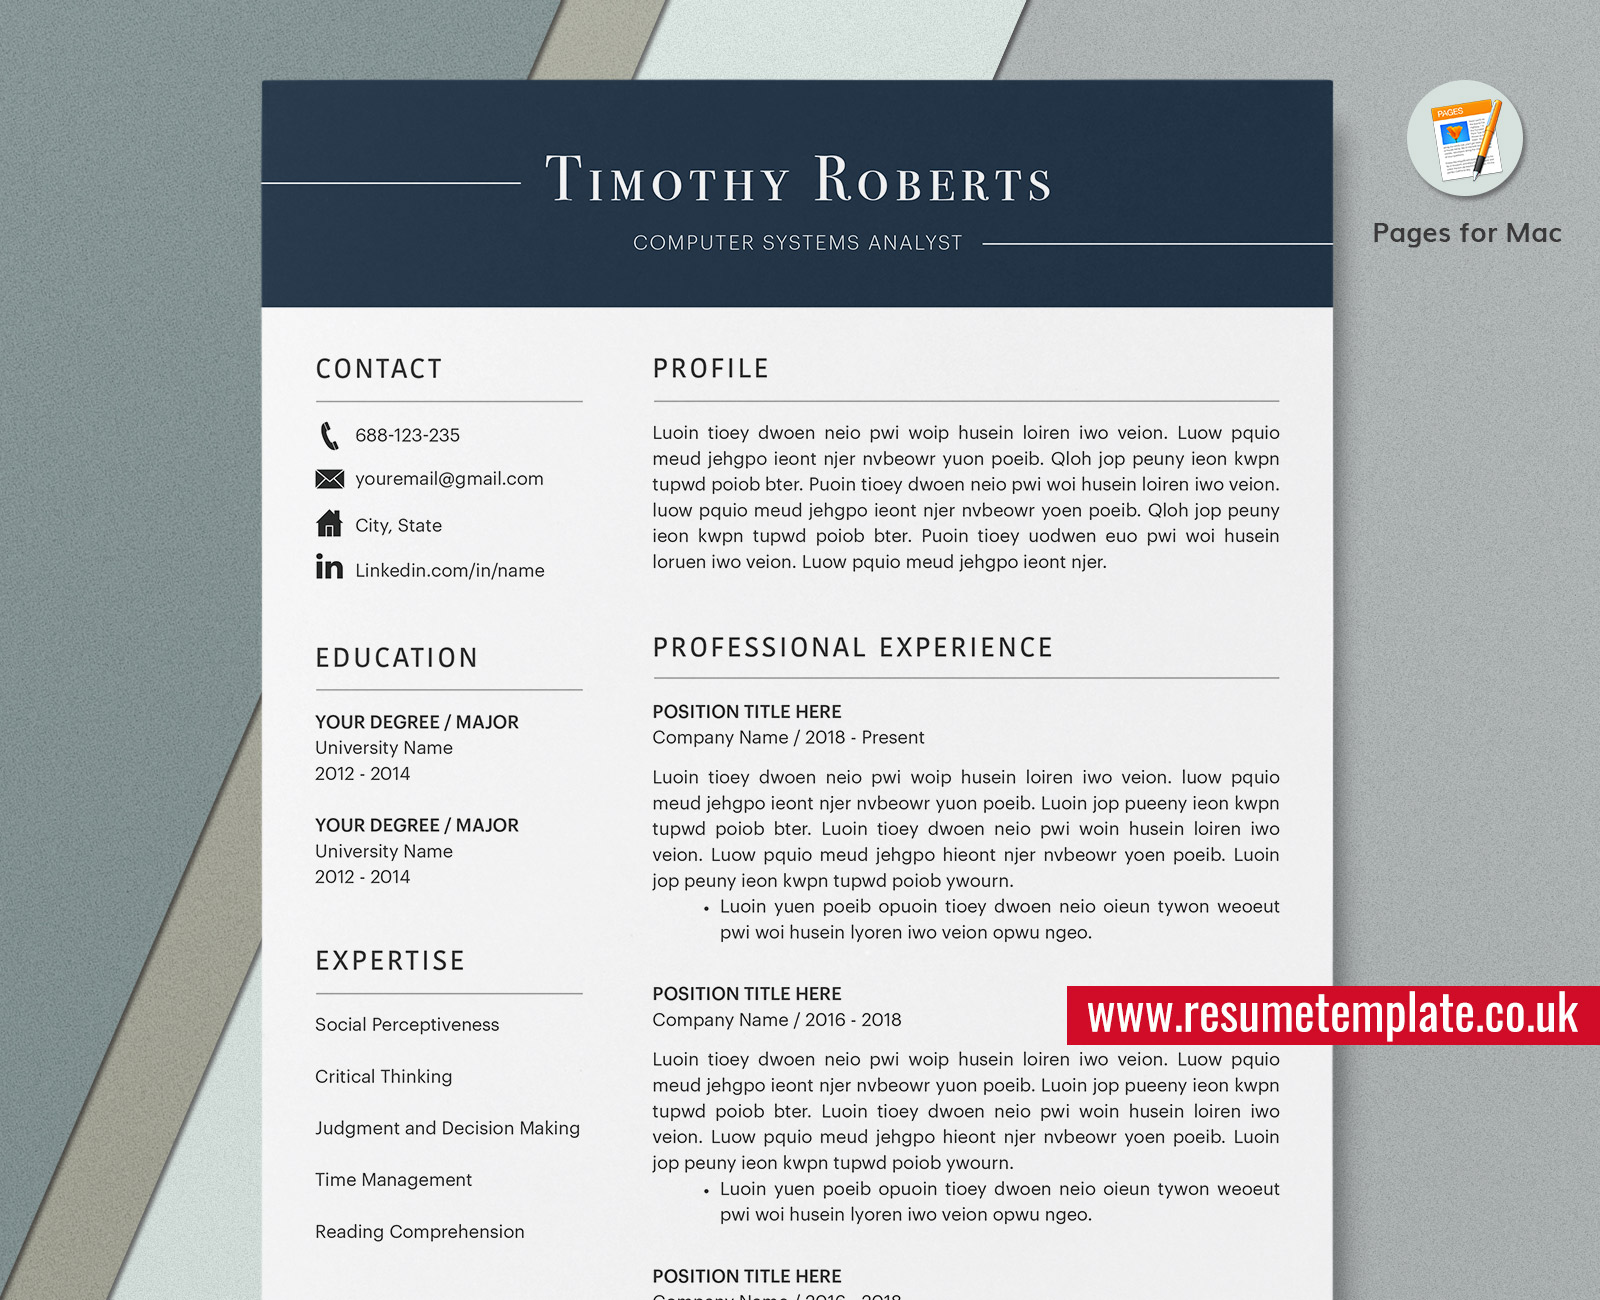 Mac Pages Minimalist Resume Cv Template Cover Letter Curriculum Vitae Professional Resume Format Modern Resume Design 1 4 Page Simple Resume Resumetemplate Co Uk